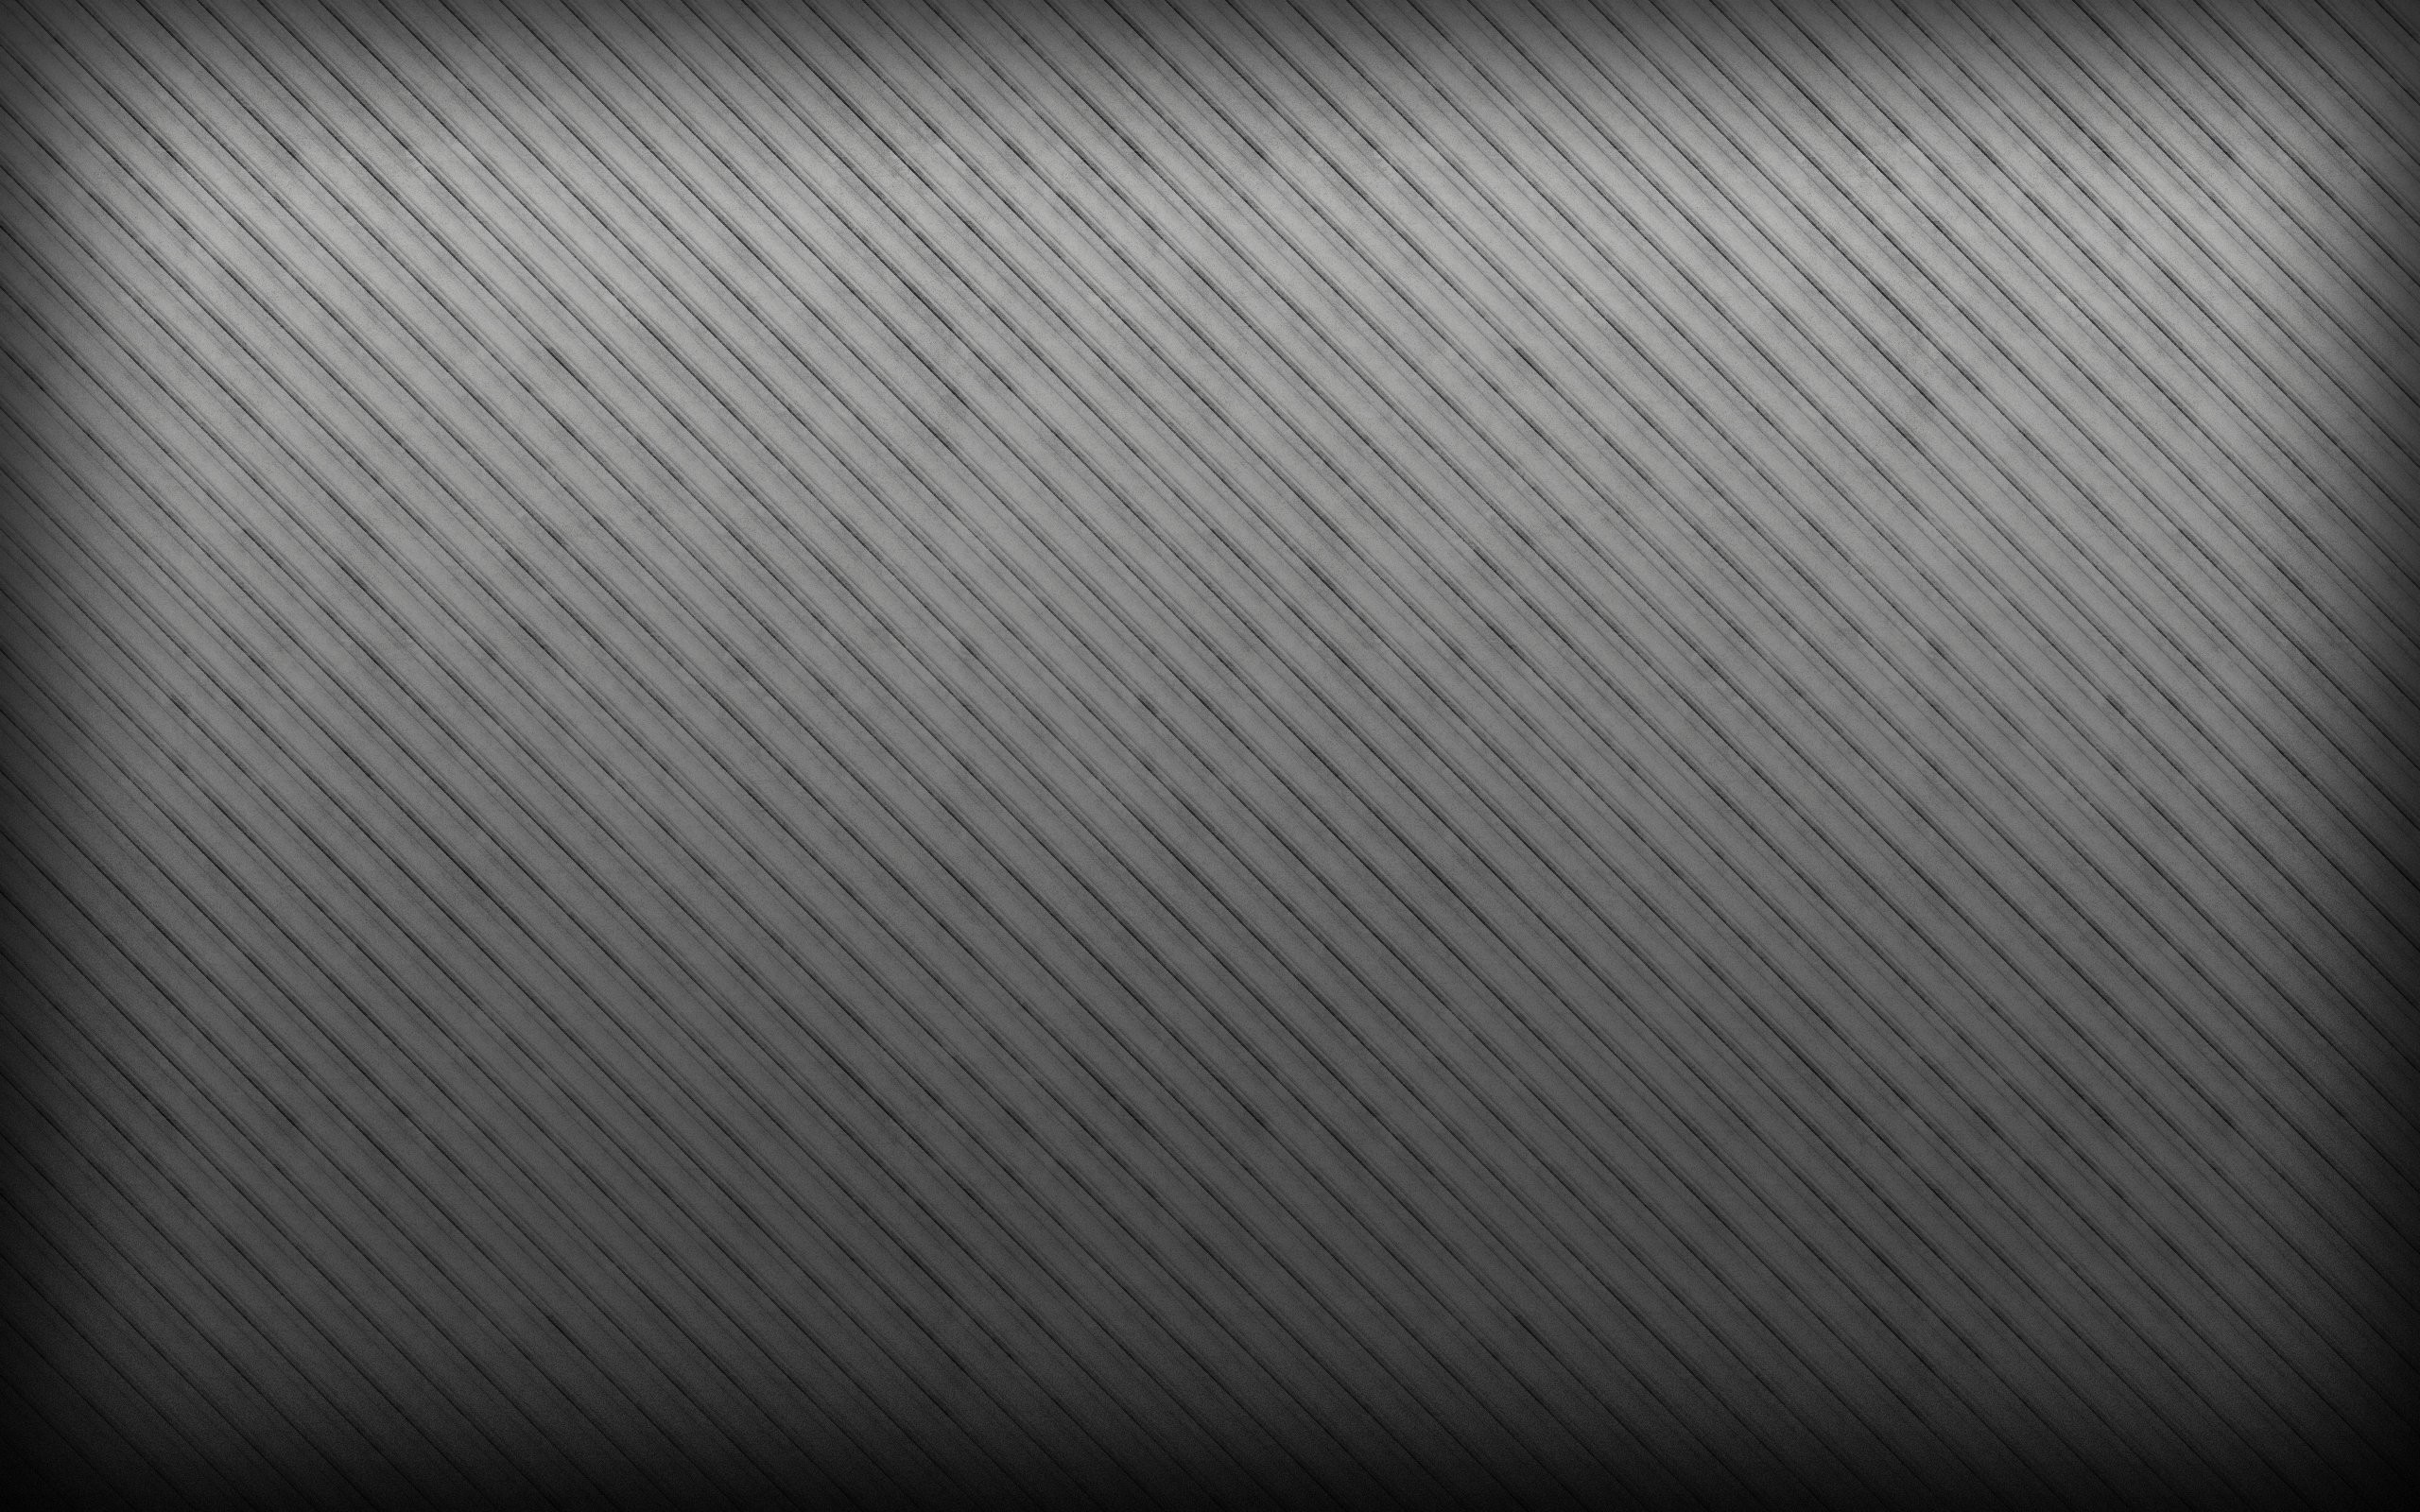 Textured Wallpaper Backgrounds (61+ images)